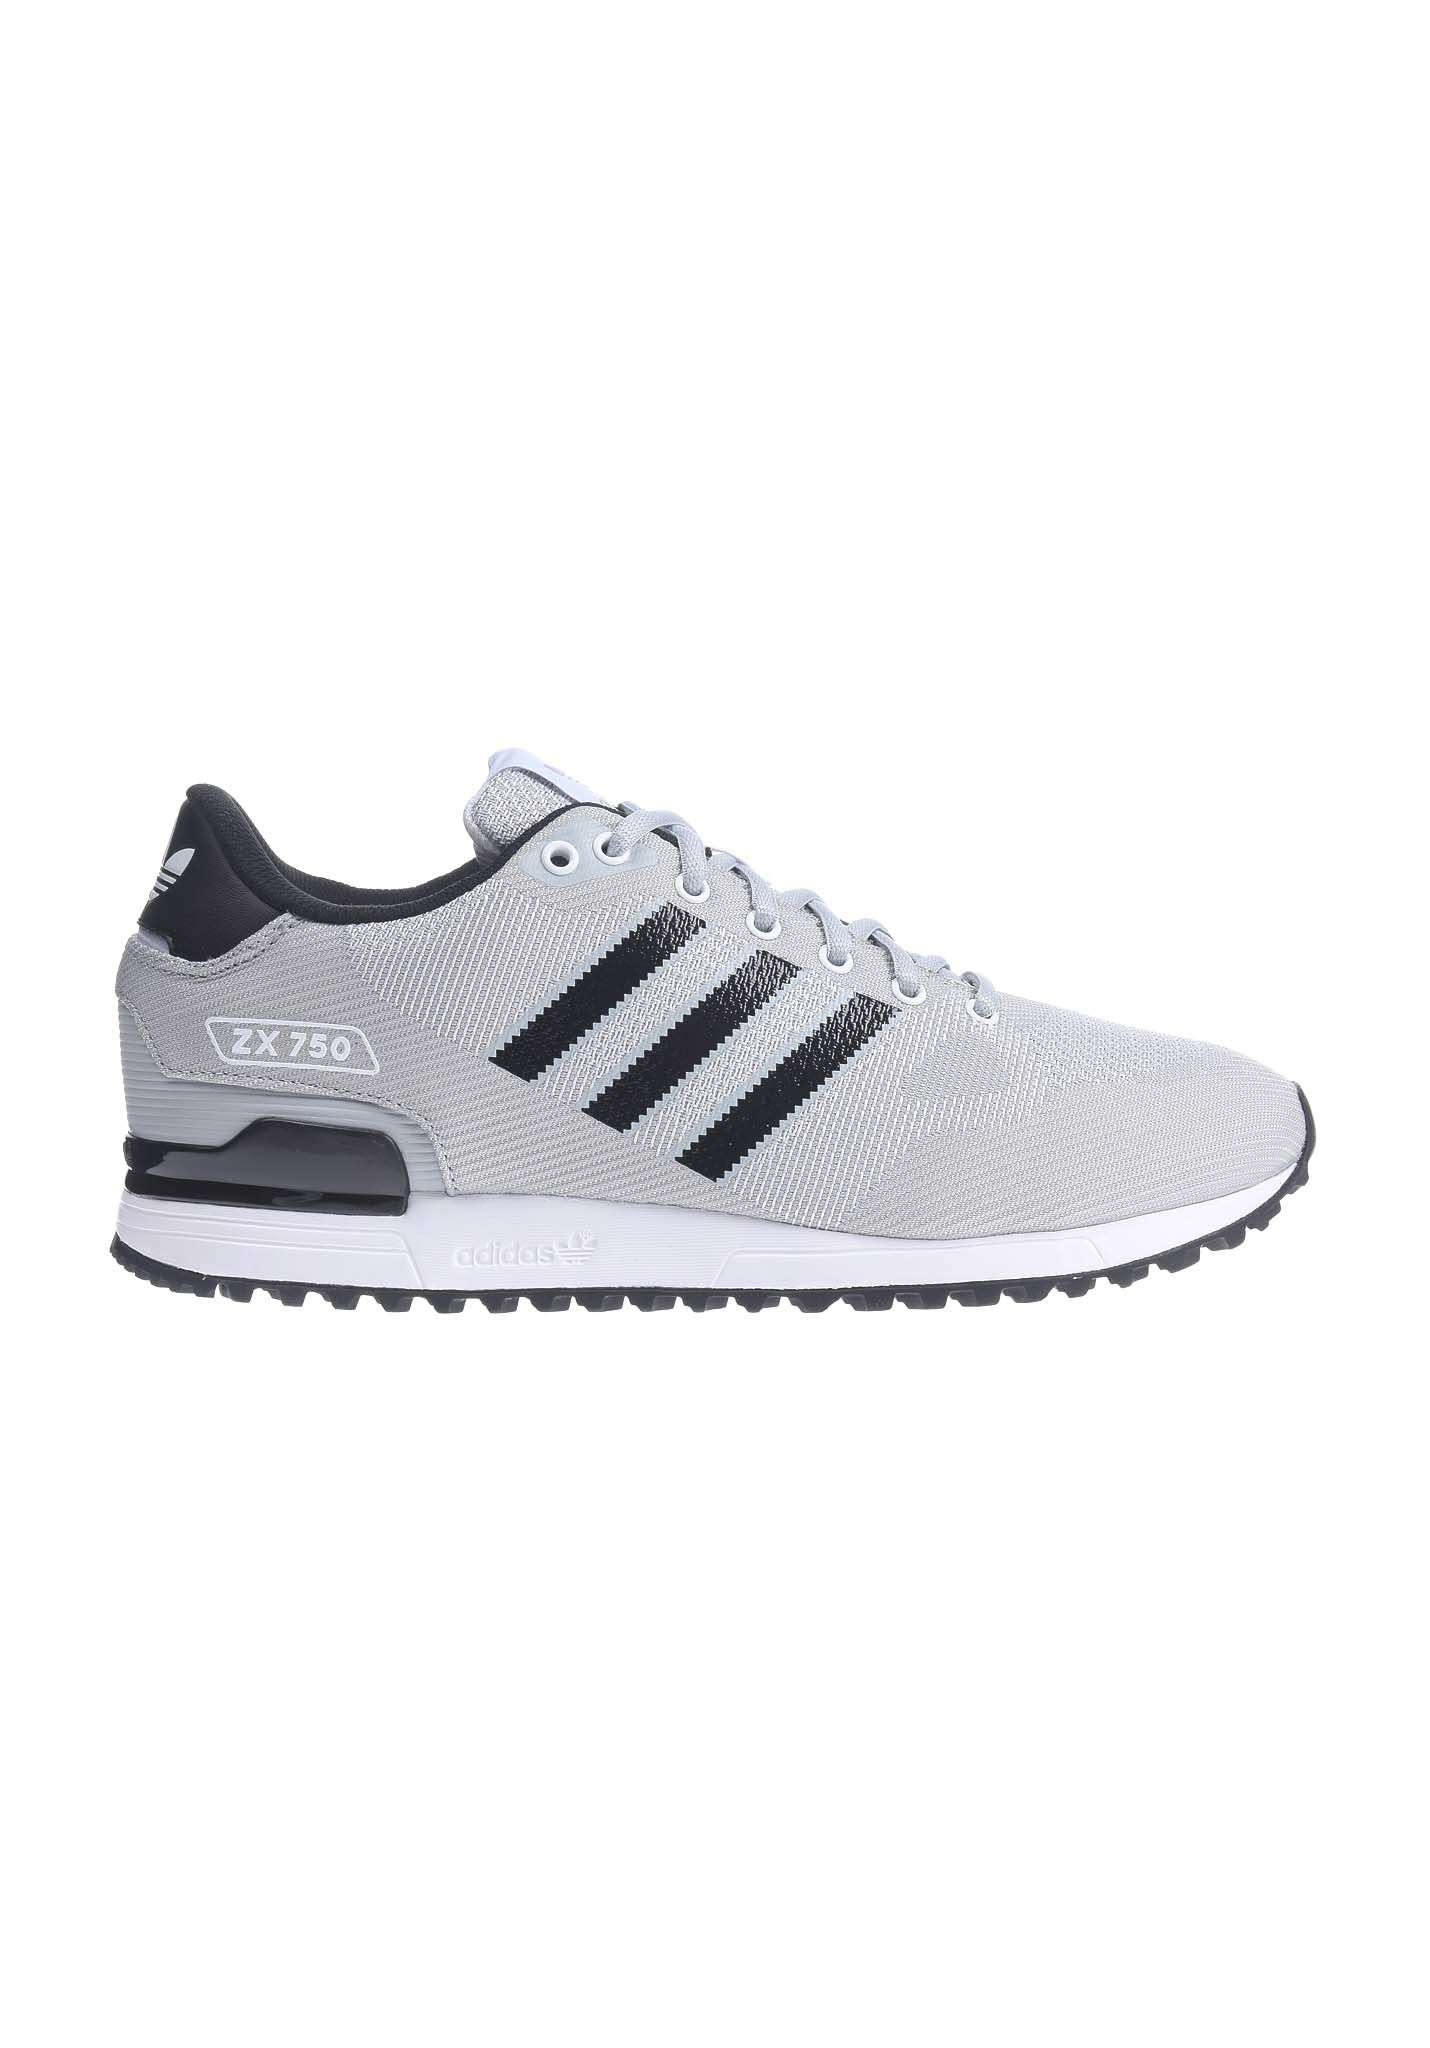 basket adidas homme grise zx